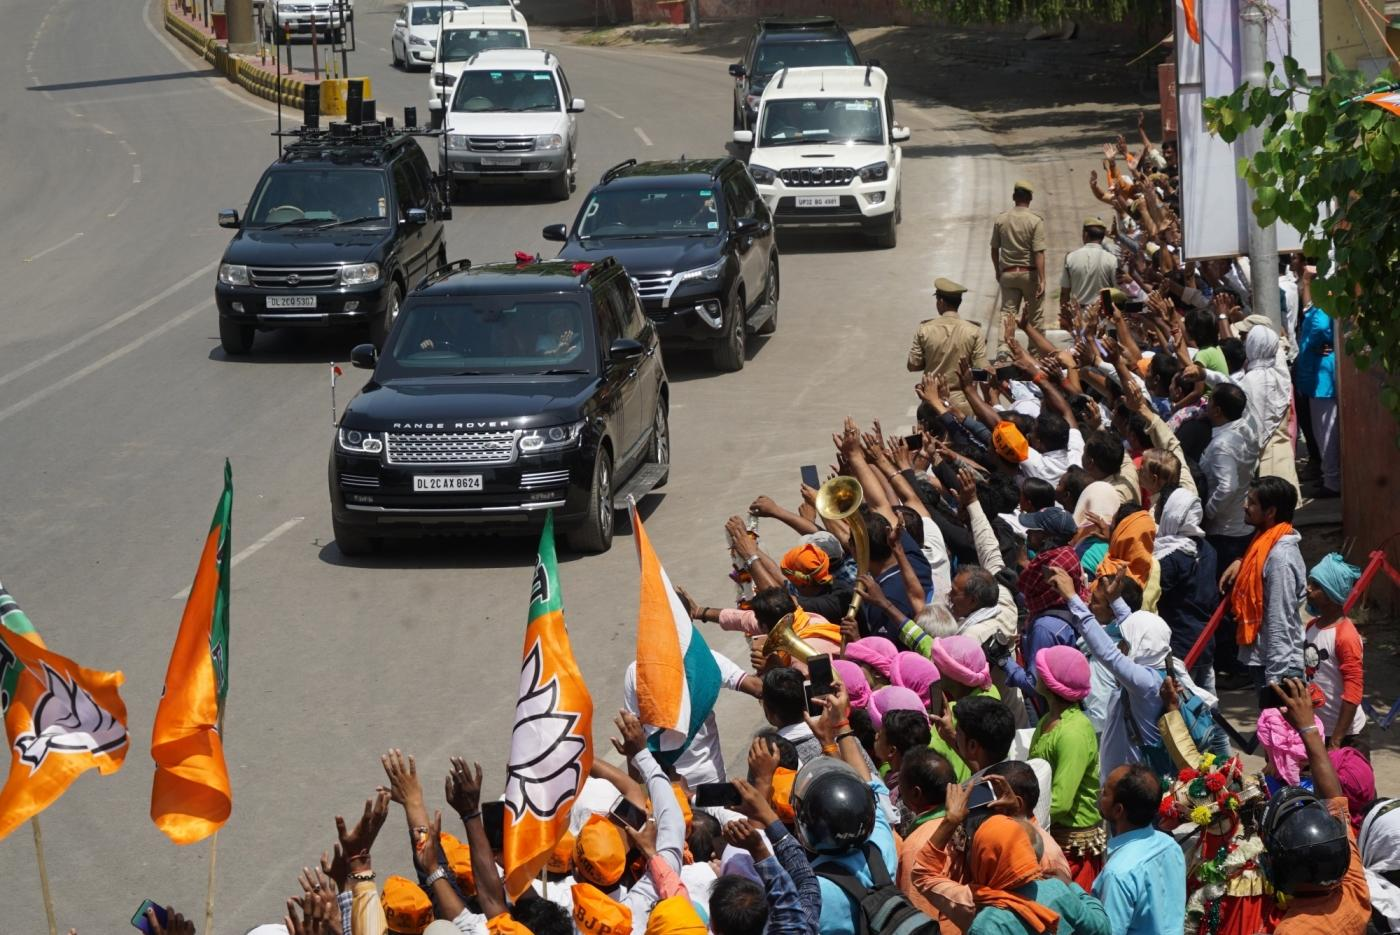 Varanasi: People queue up to wave out to Prime Minister Narendra Modi as he heads to the Kashi Vishwanath Temple in Varanasi on May 27, 2019. (Photo: IANS) by .